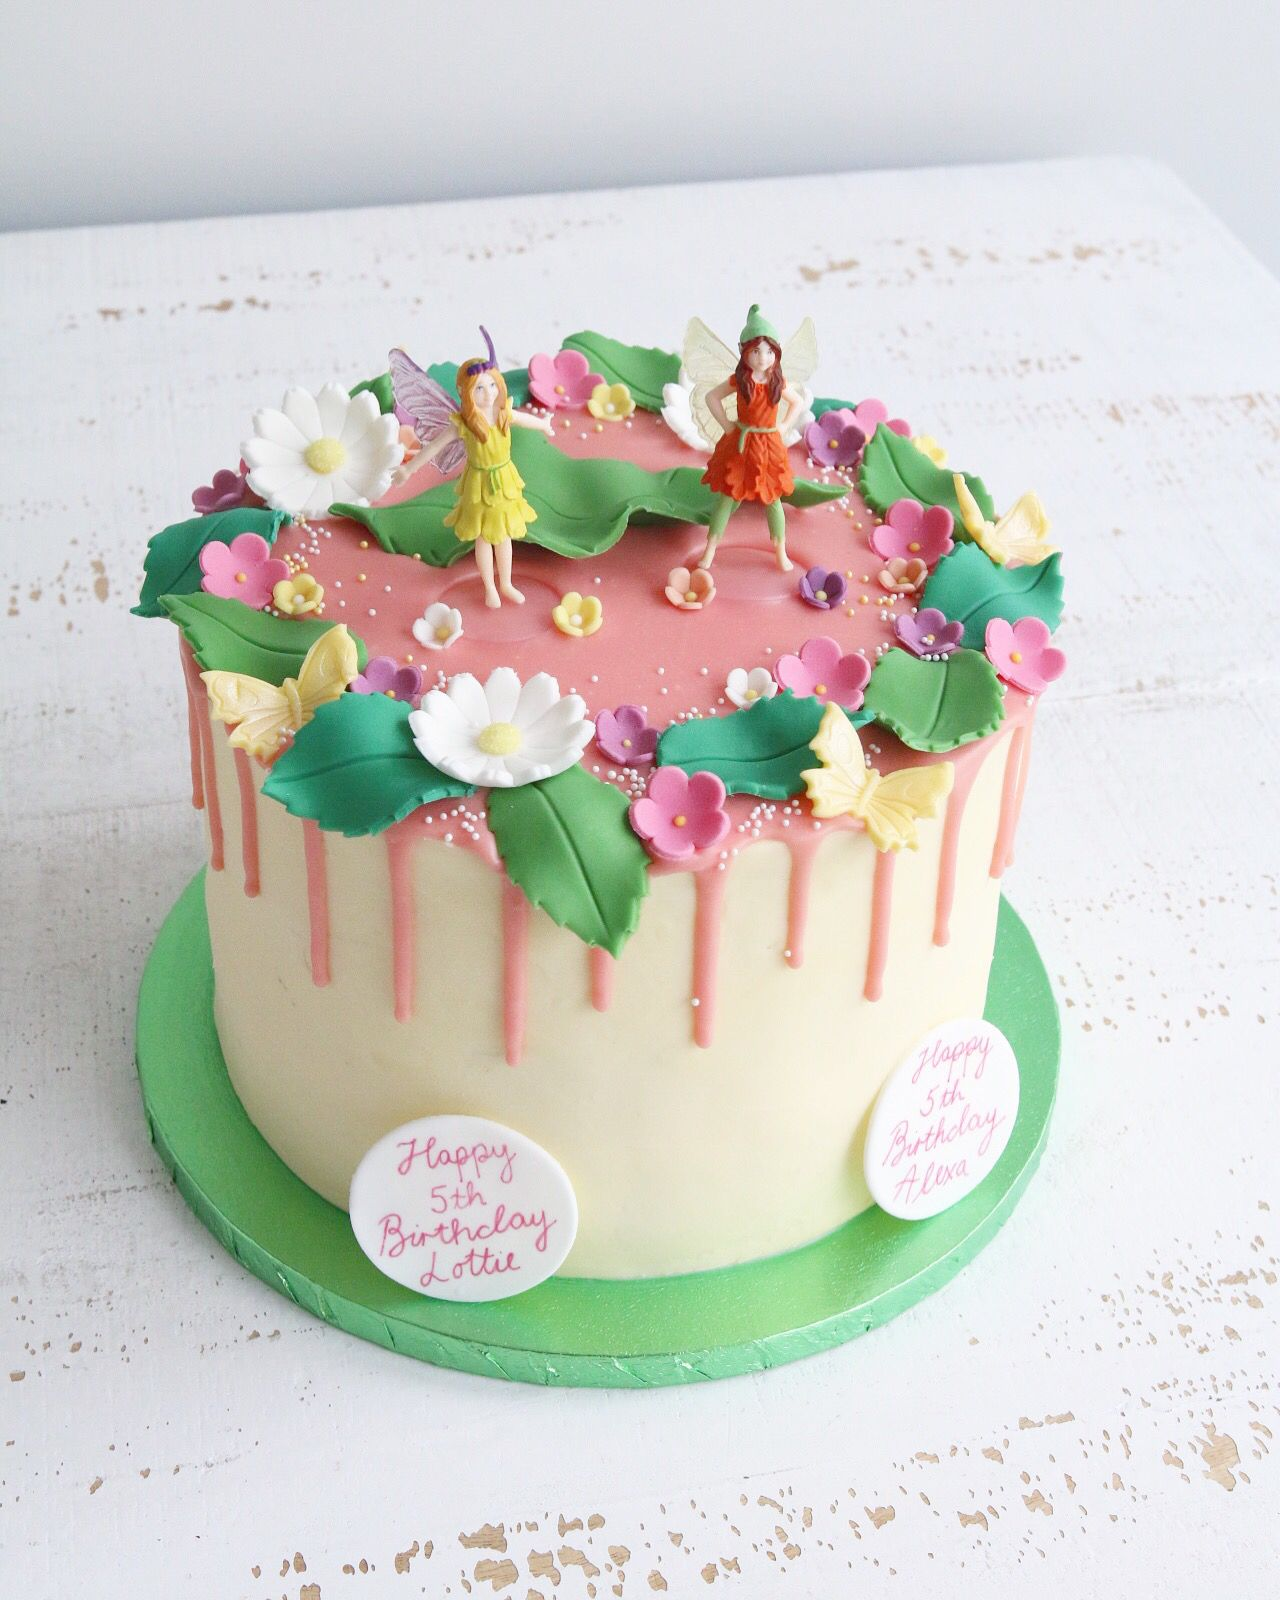 Pleasing Kids Birthday Cakes 7Th Birthday Cakes Fairy Birthday Cake Personalised Birthday Cards Sponlily Jamesorg